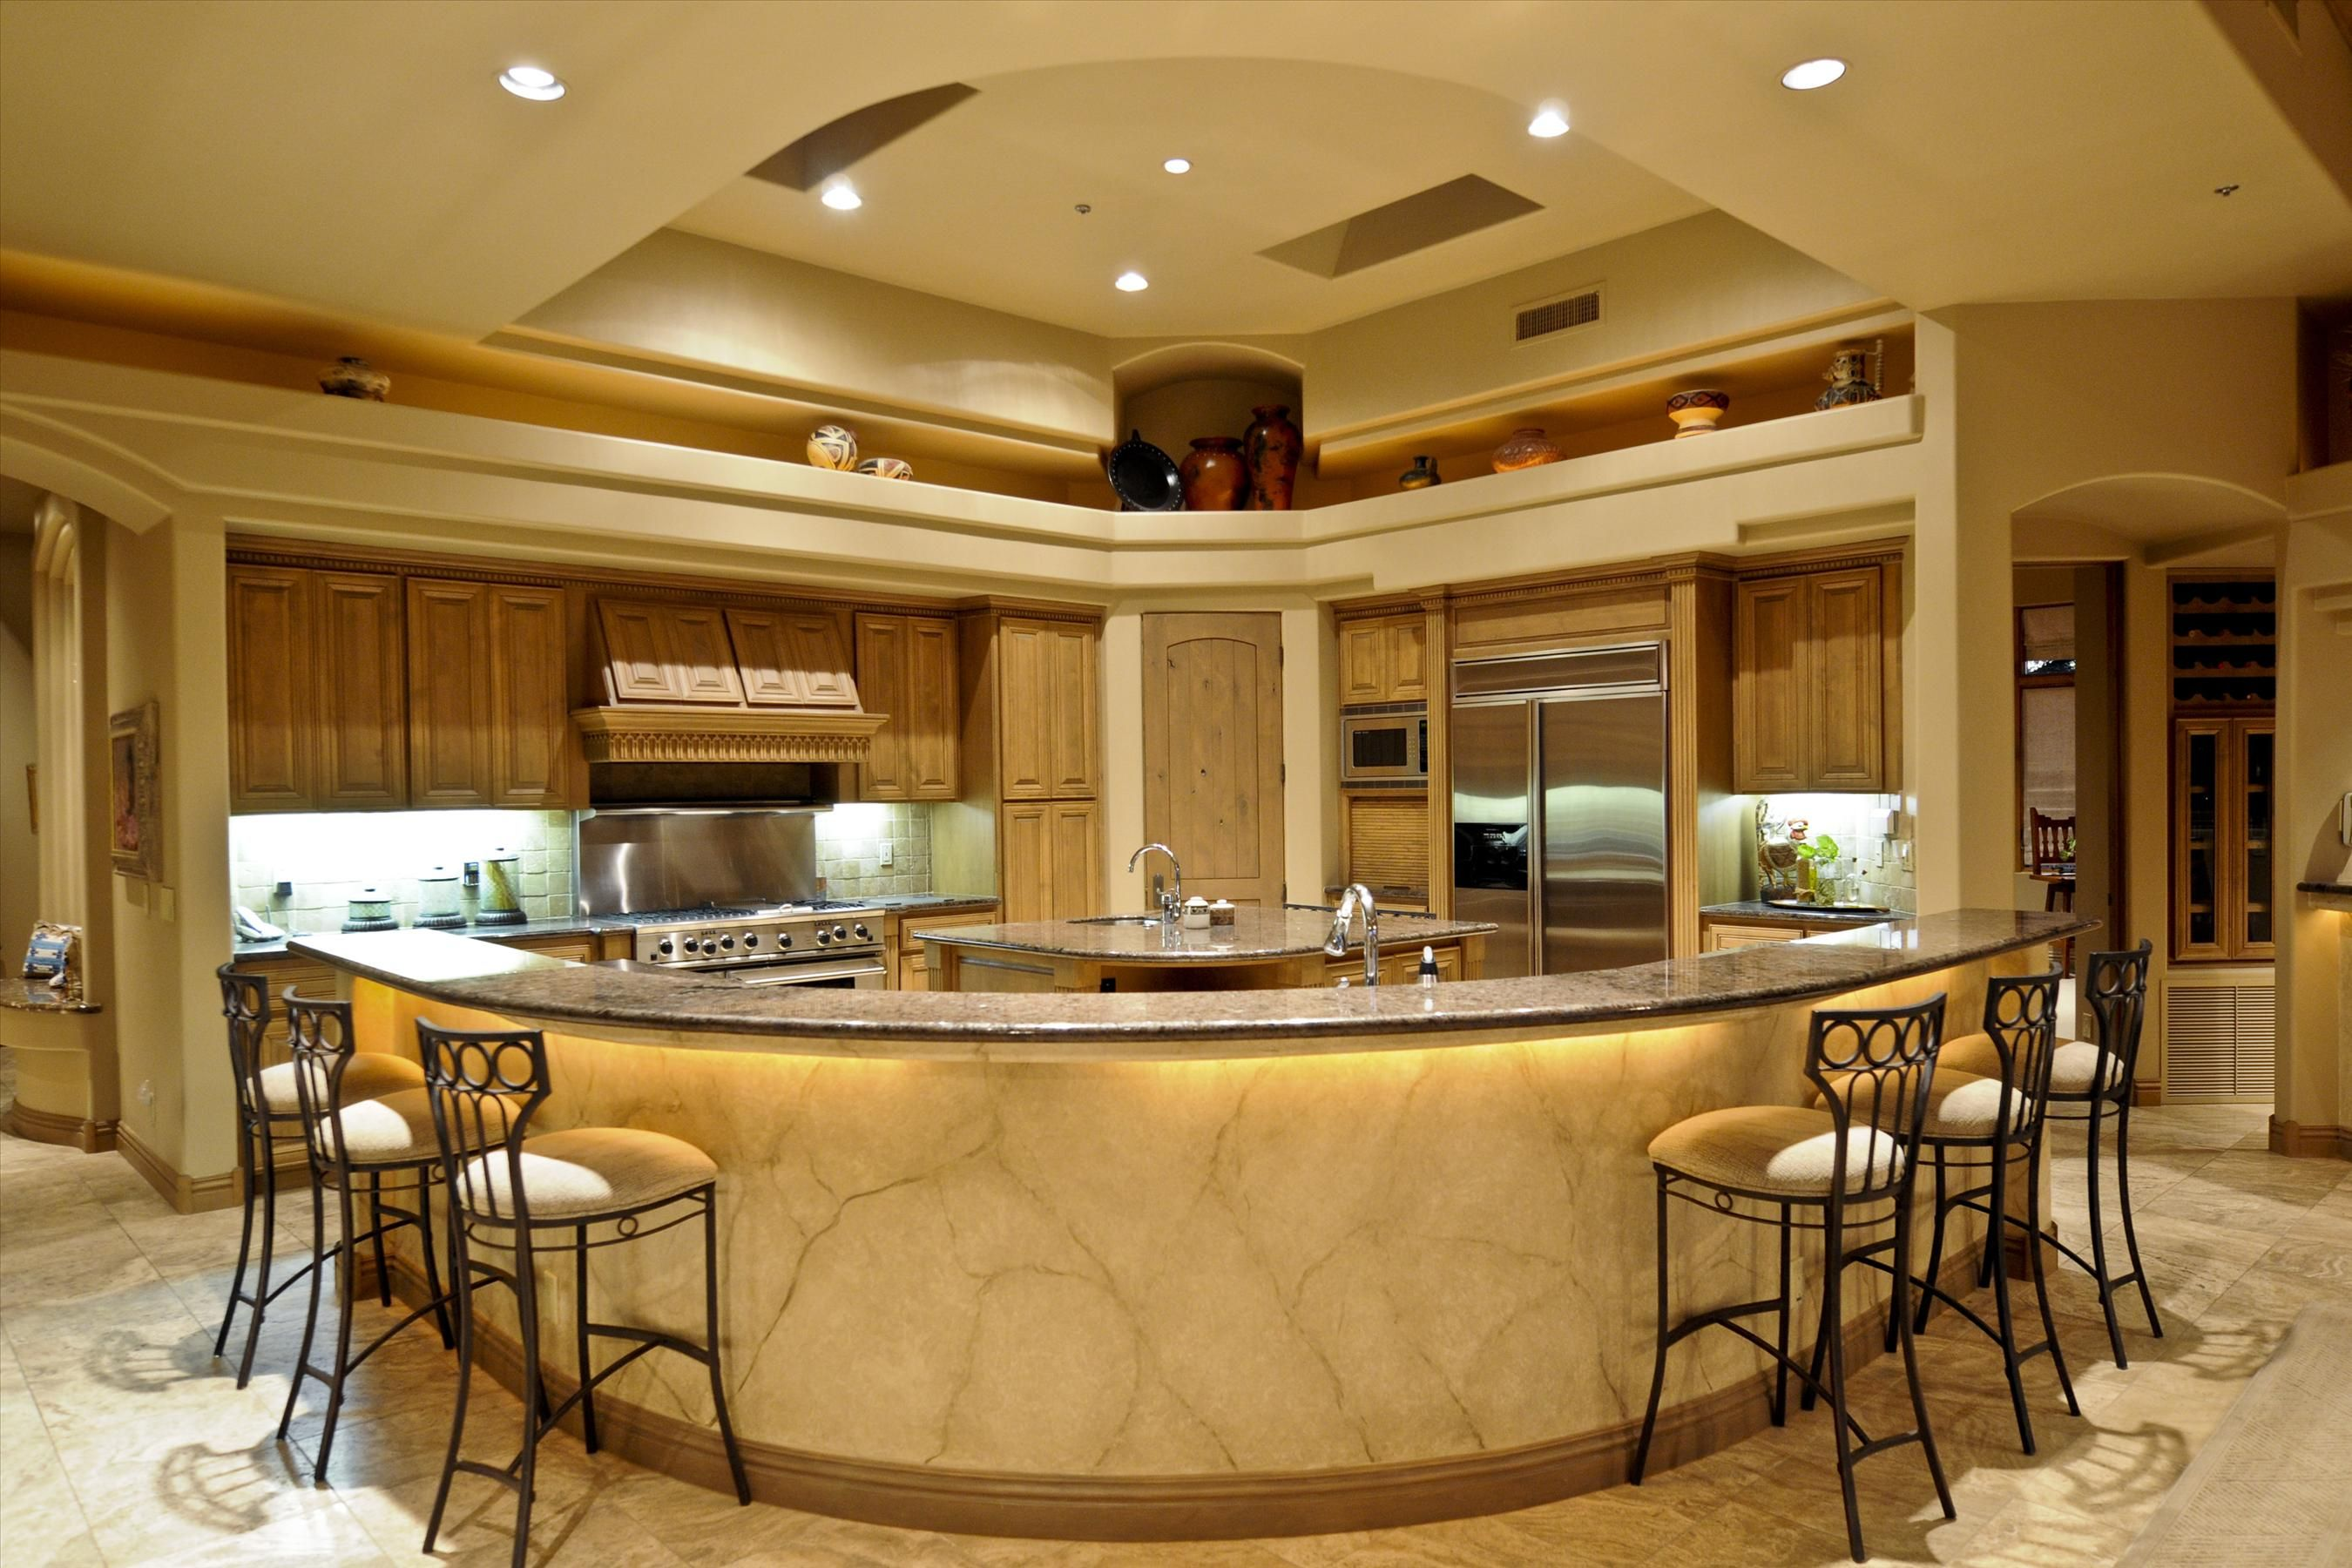 Premier Luxury Kitchens Custom Designed And Professionally Installed By Our Kitchendesigns